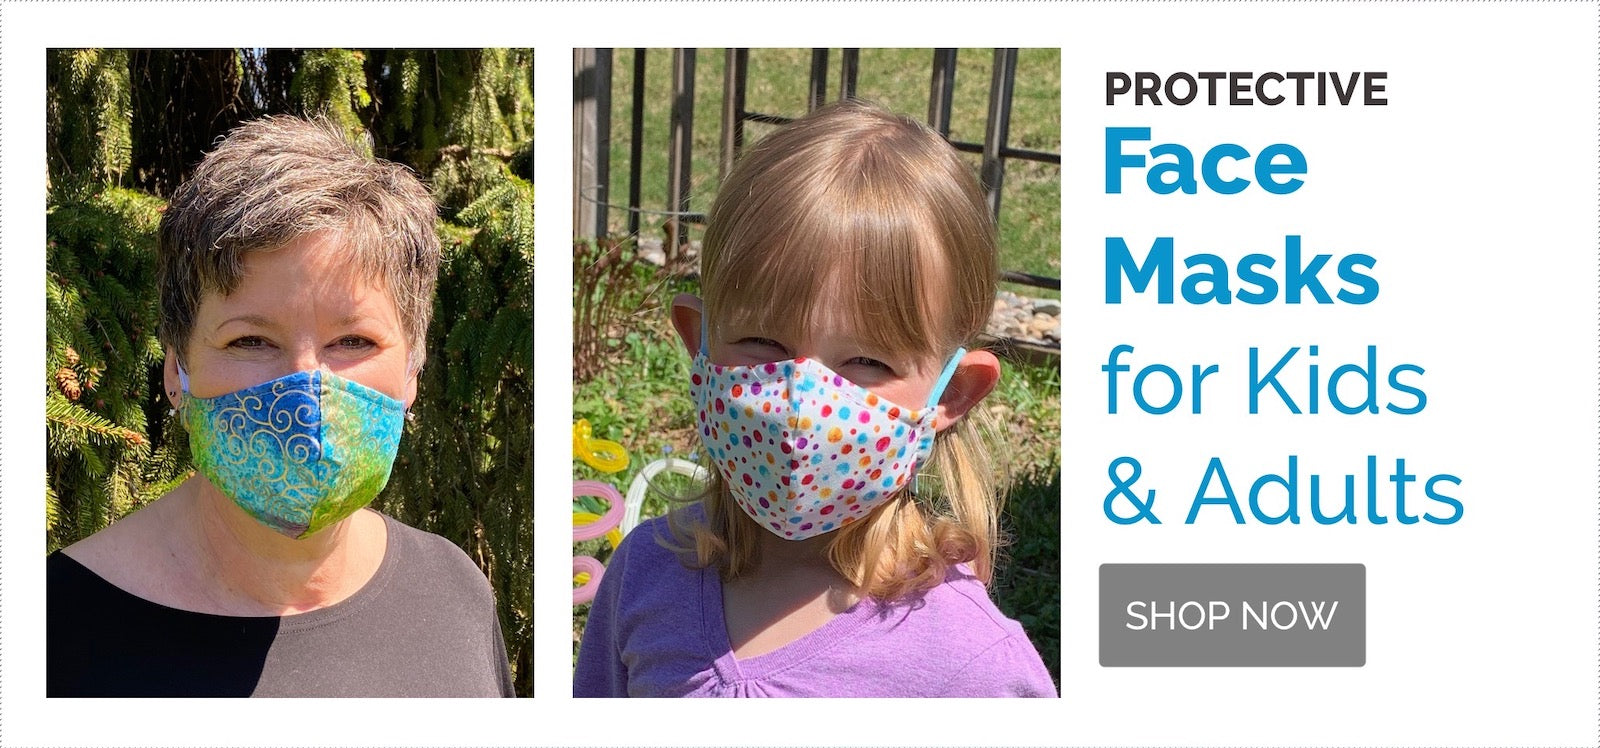 Protective Face Masks for Adults and Kids